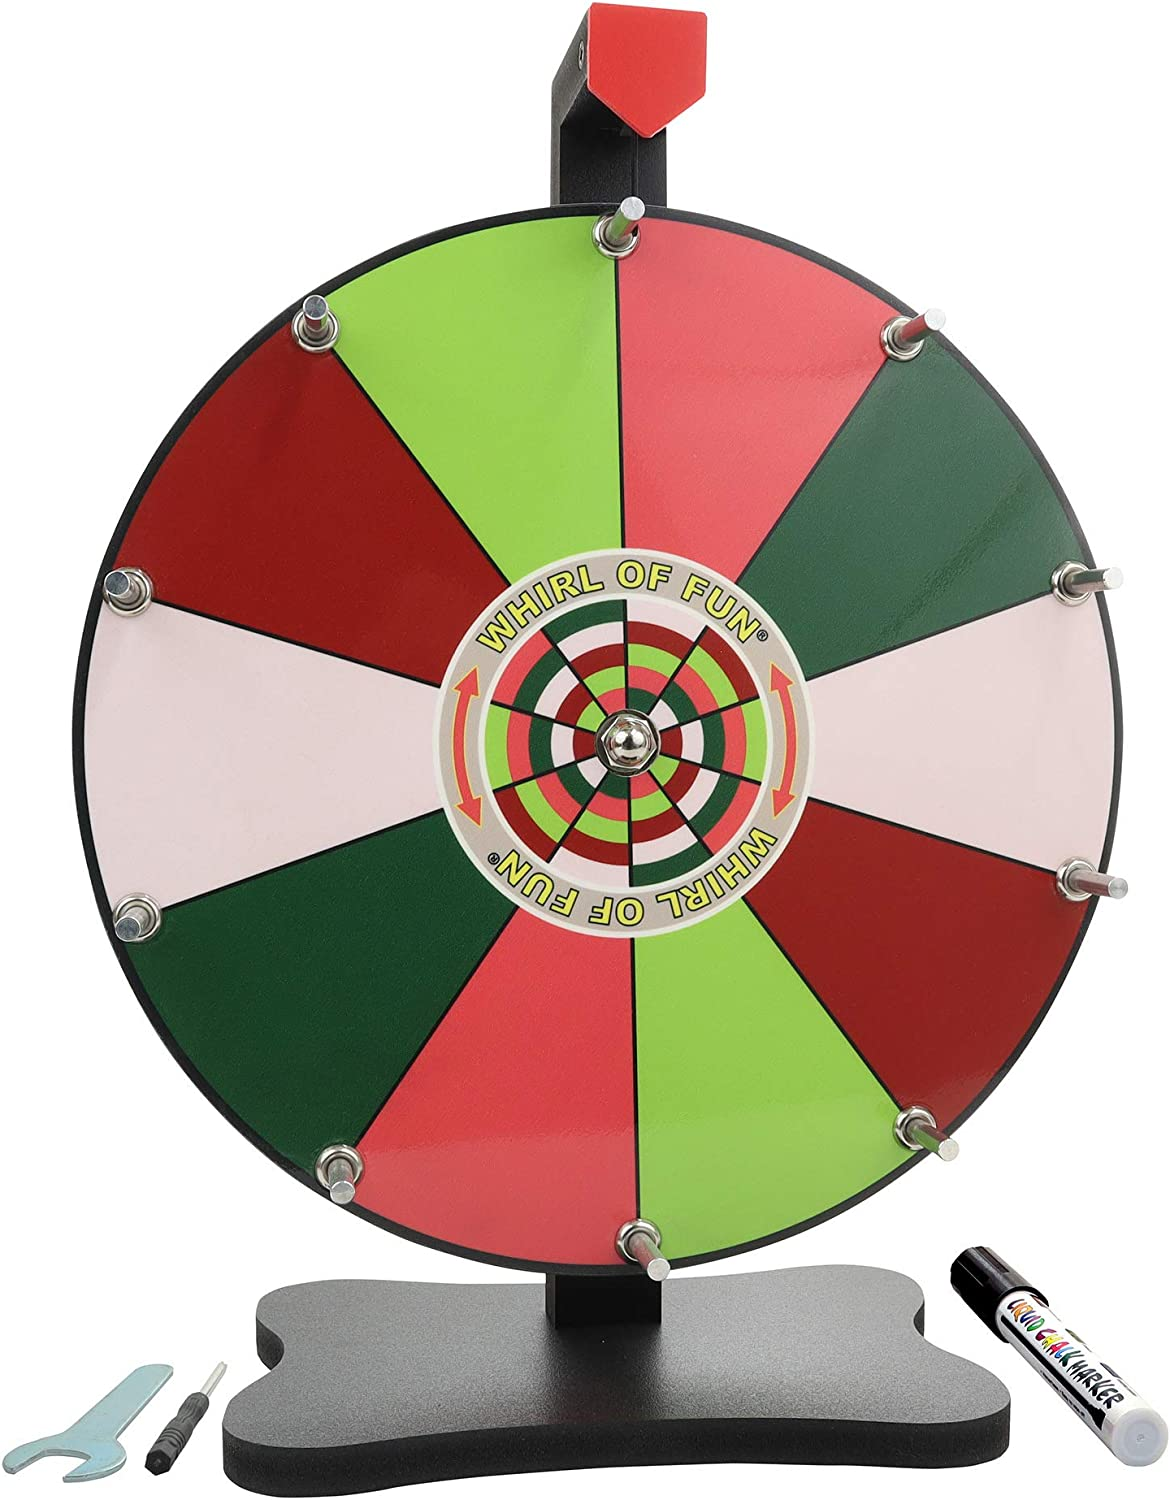 Dedication Whirl of Fun Spinning Prize Popular brand Wheel Inch-Tabletop 1 12 with Stand